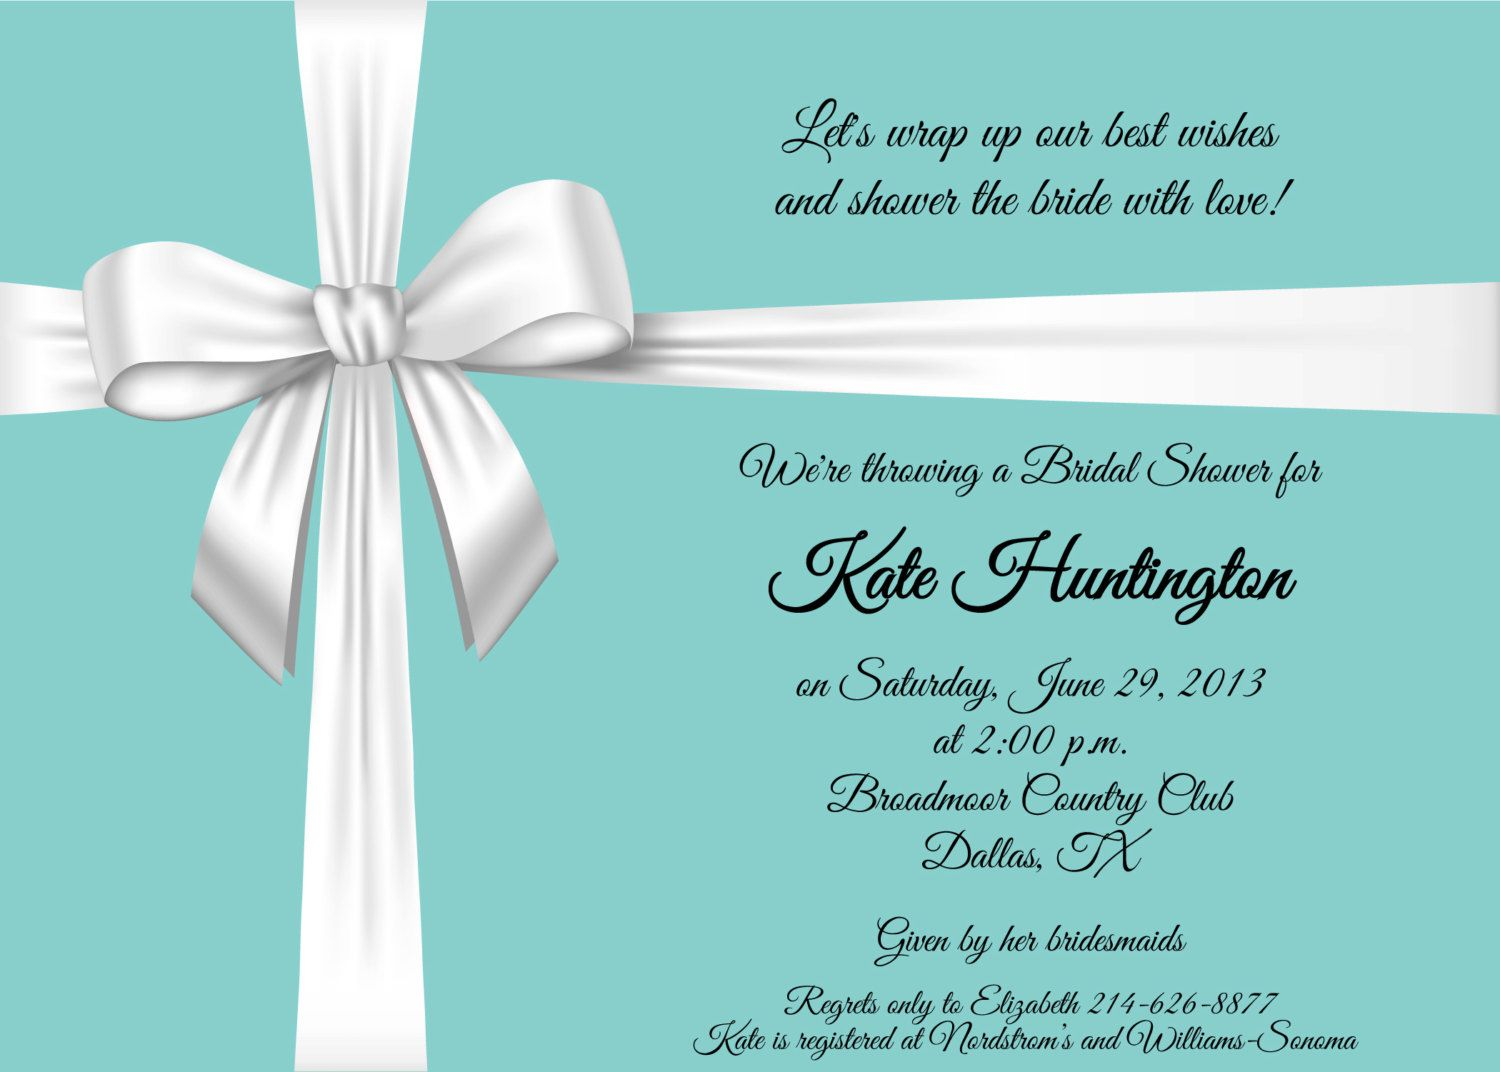 tiffany babyshower tiffany blue wedding invitations images about Tiffany Babyshower on Pinterest Invitation wording Tiffany baby showers and Party ideas